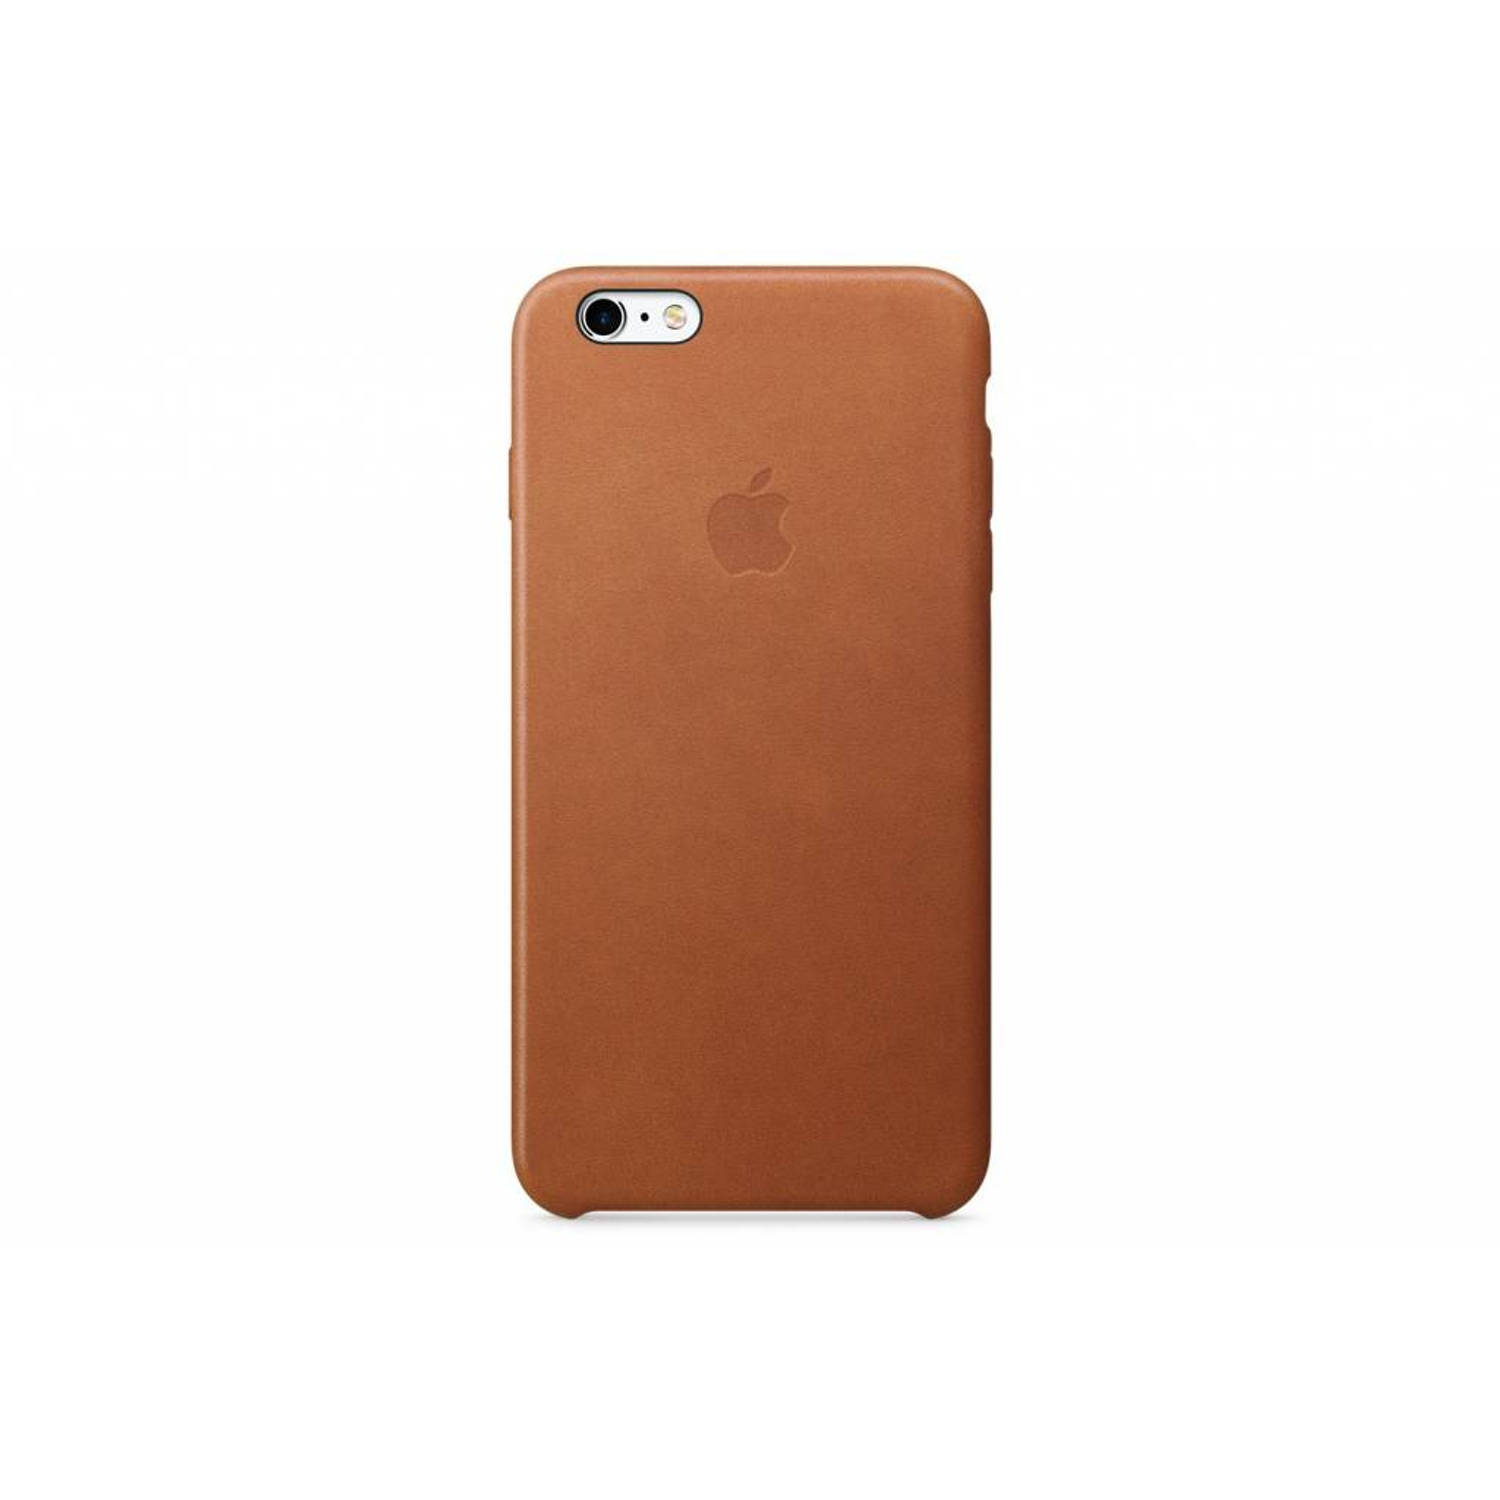 Apple iPhone 6s Leather Case Saddle Brown (MKXT2ZM-A)